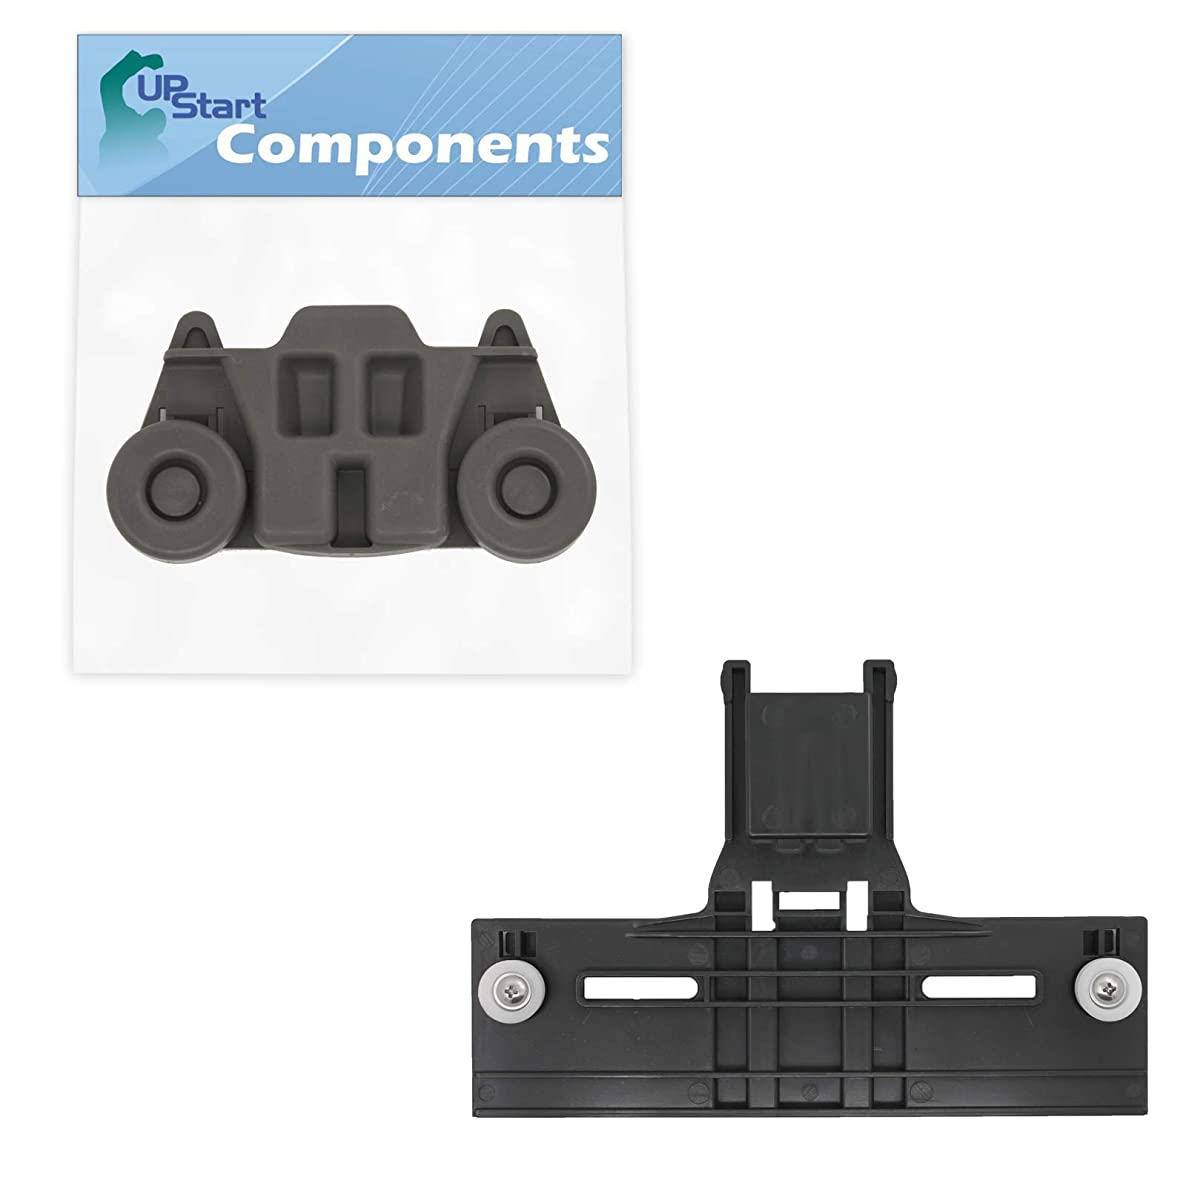 W10350376 Top Rack Adjuster & W10195416 Lower Dishwasher Wheel Replacement for KitchenAid KUDE40FXPA3 Dishwasher - Compatible with W10350376 Rack Upper Top Adjuster & W10195416 Dishrack Wheel Kit